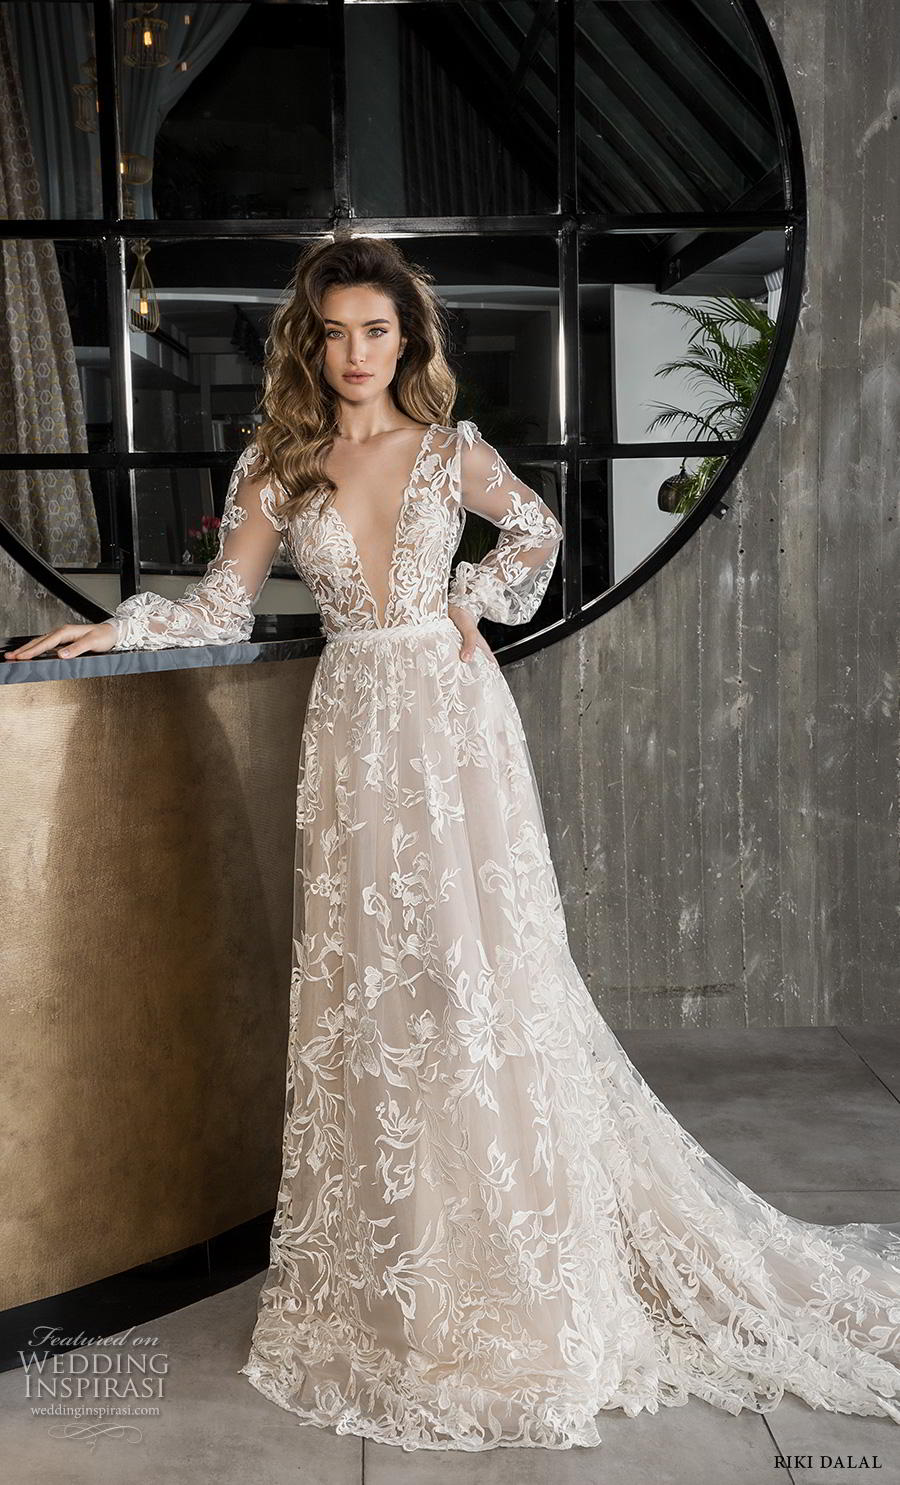 riki dalal 2018 glamour bridal long bishop sleeves deep v neck full embellishment romantic bohemian a line wedding dress backless v back chapel train (10) mv